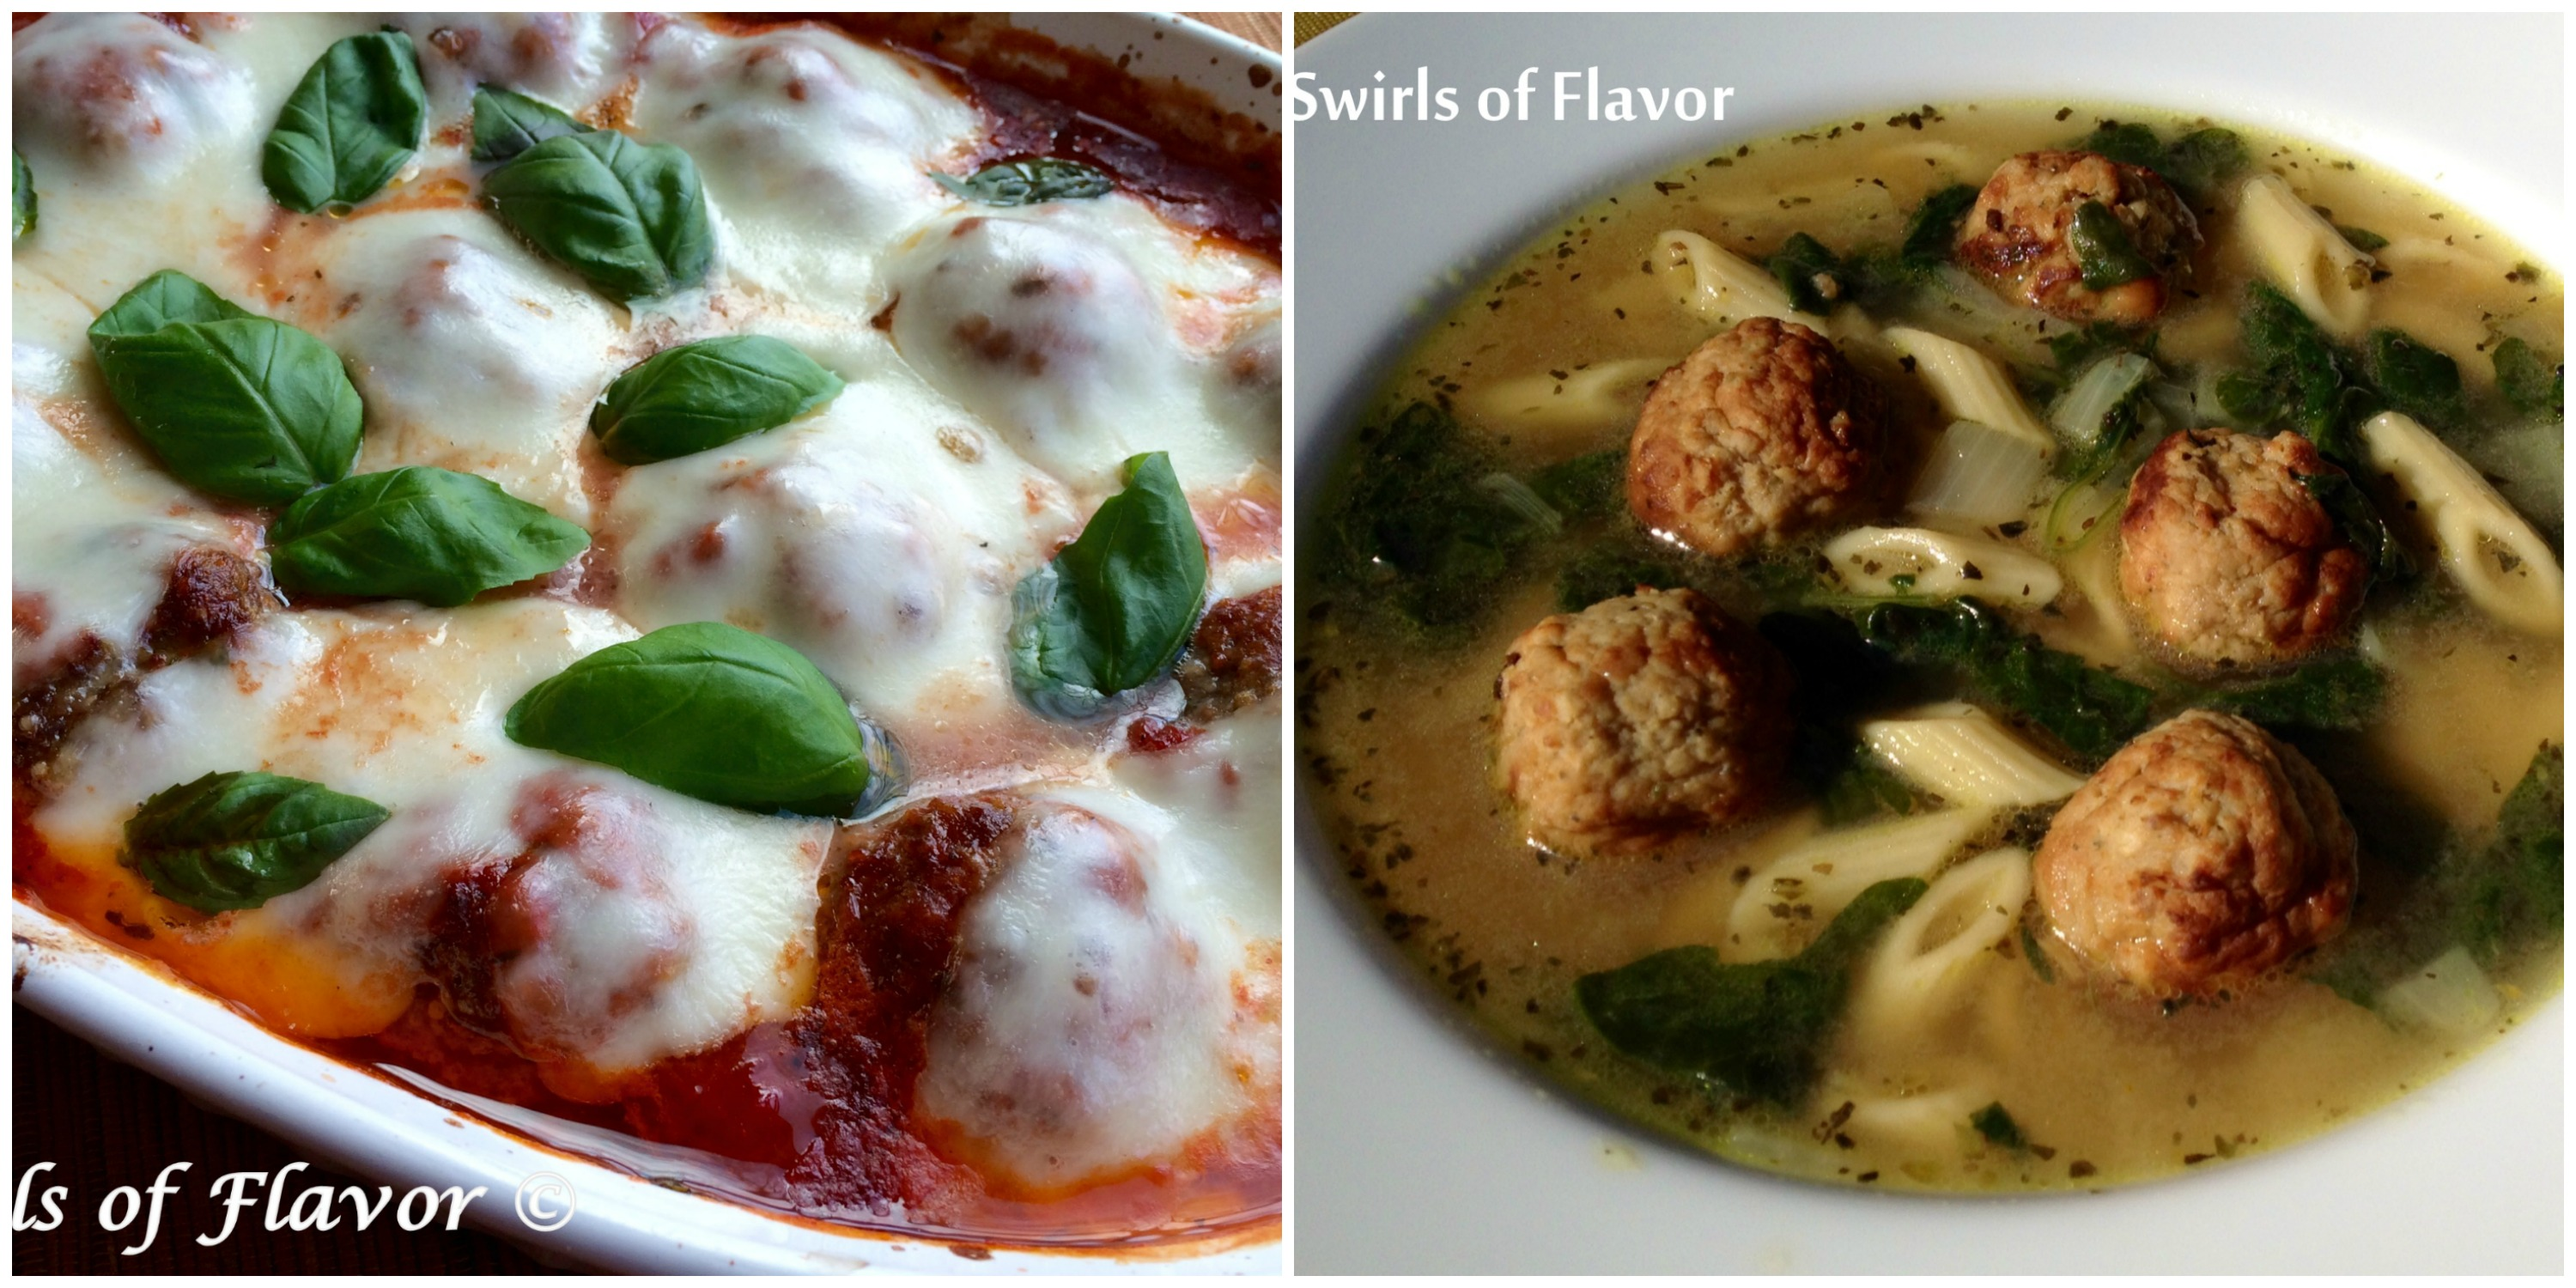 Baked meatballs Parmesan and Italian Wedding Soup